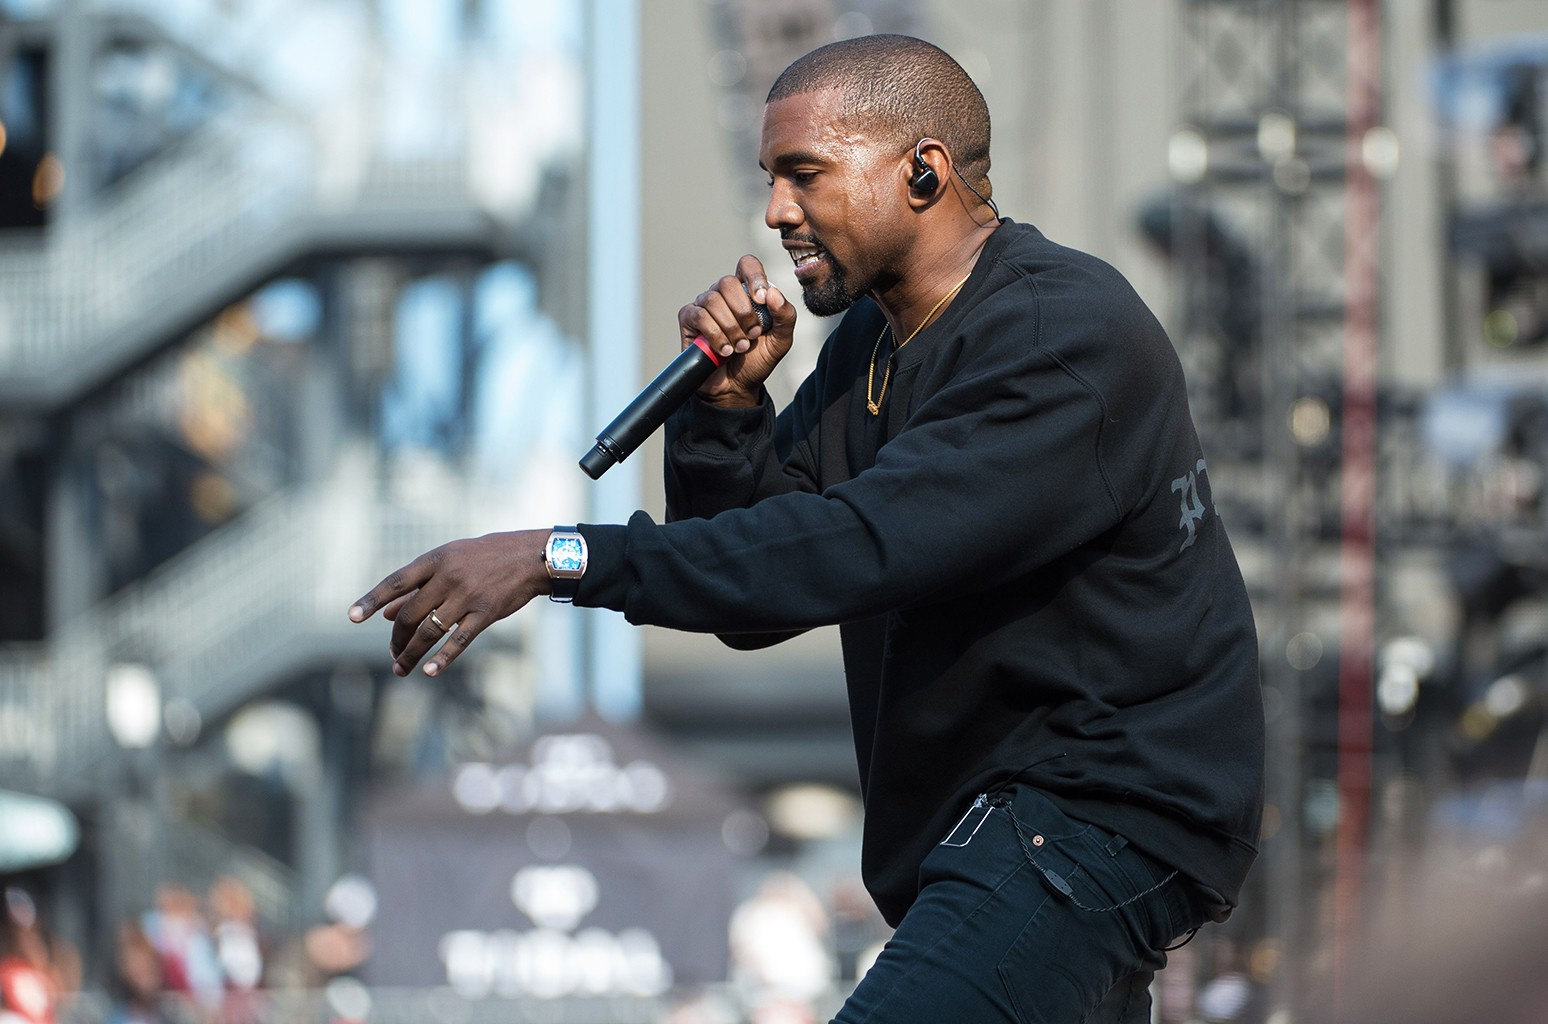 Kanye West performs at Chance the Rapper's Magnificent Coloring Day